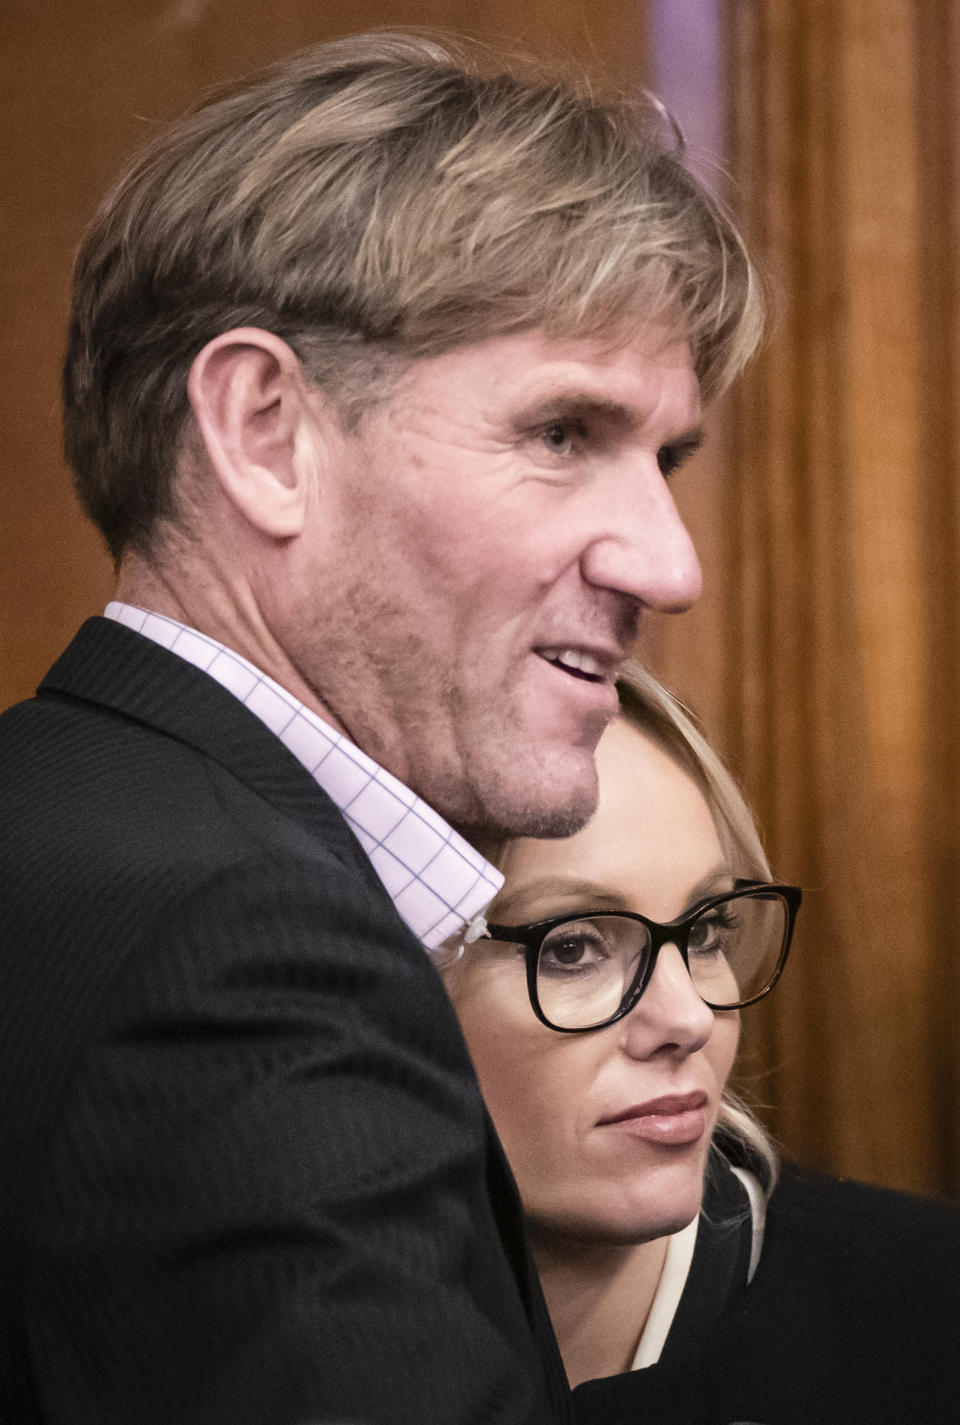 Michelle Dewberry, the former winner of The Apprentice and Brexit Party candidate for Hull West & Hessle, with former Crystal Palace owner Simon Jordan after she failed to win the Kingston upon Hull West & Hessle seat at the Guildhall in Hull in the 2019 General Election. (Photo by Danny Lawson/PA Images via Getty Images)